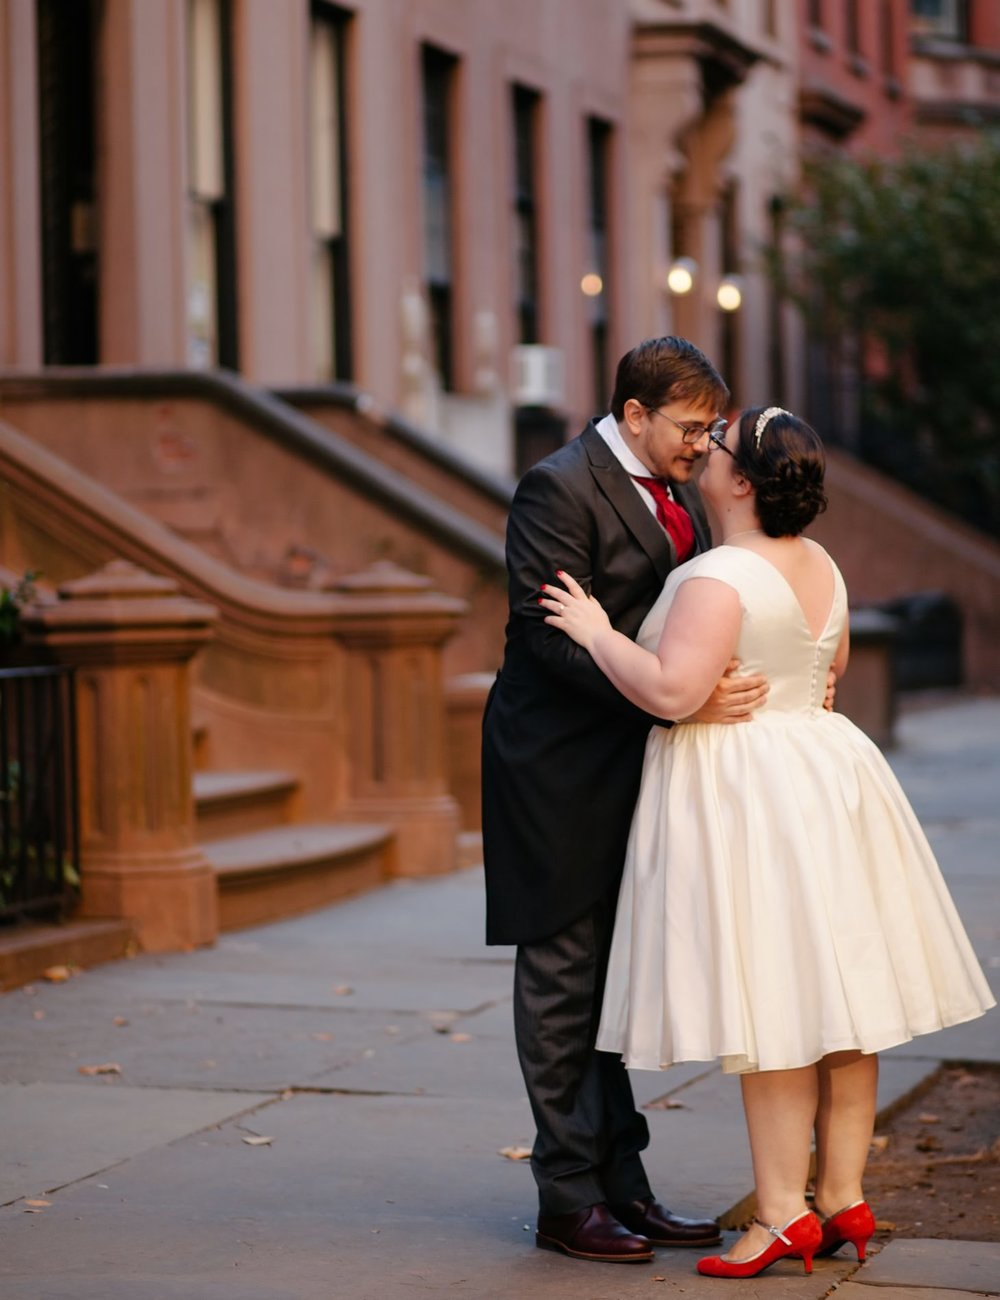 nyc-wedding-photographer-brooklyn-historic-society-smitten-chickens003.jpg